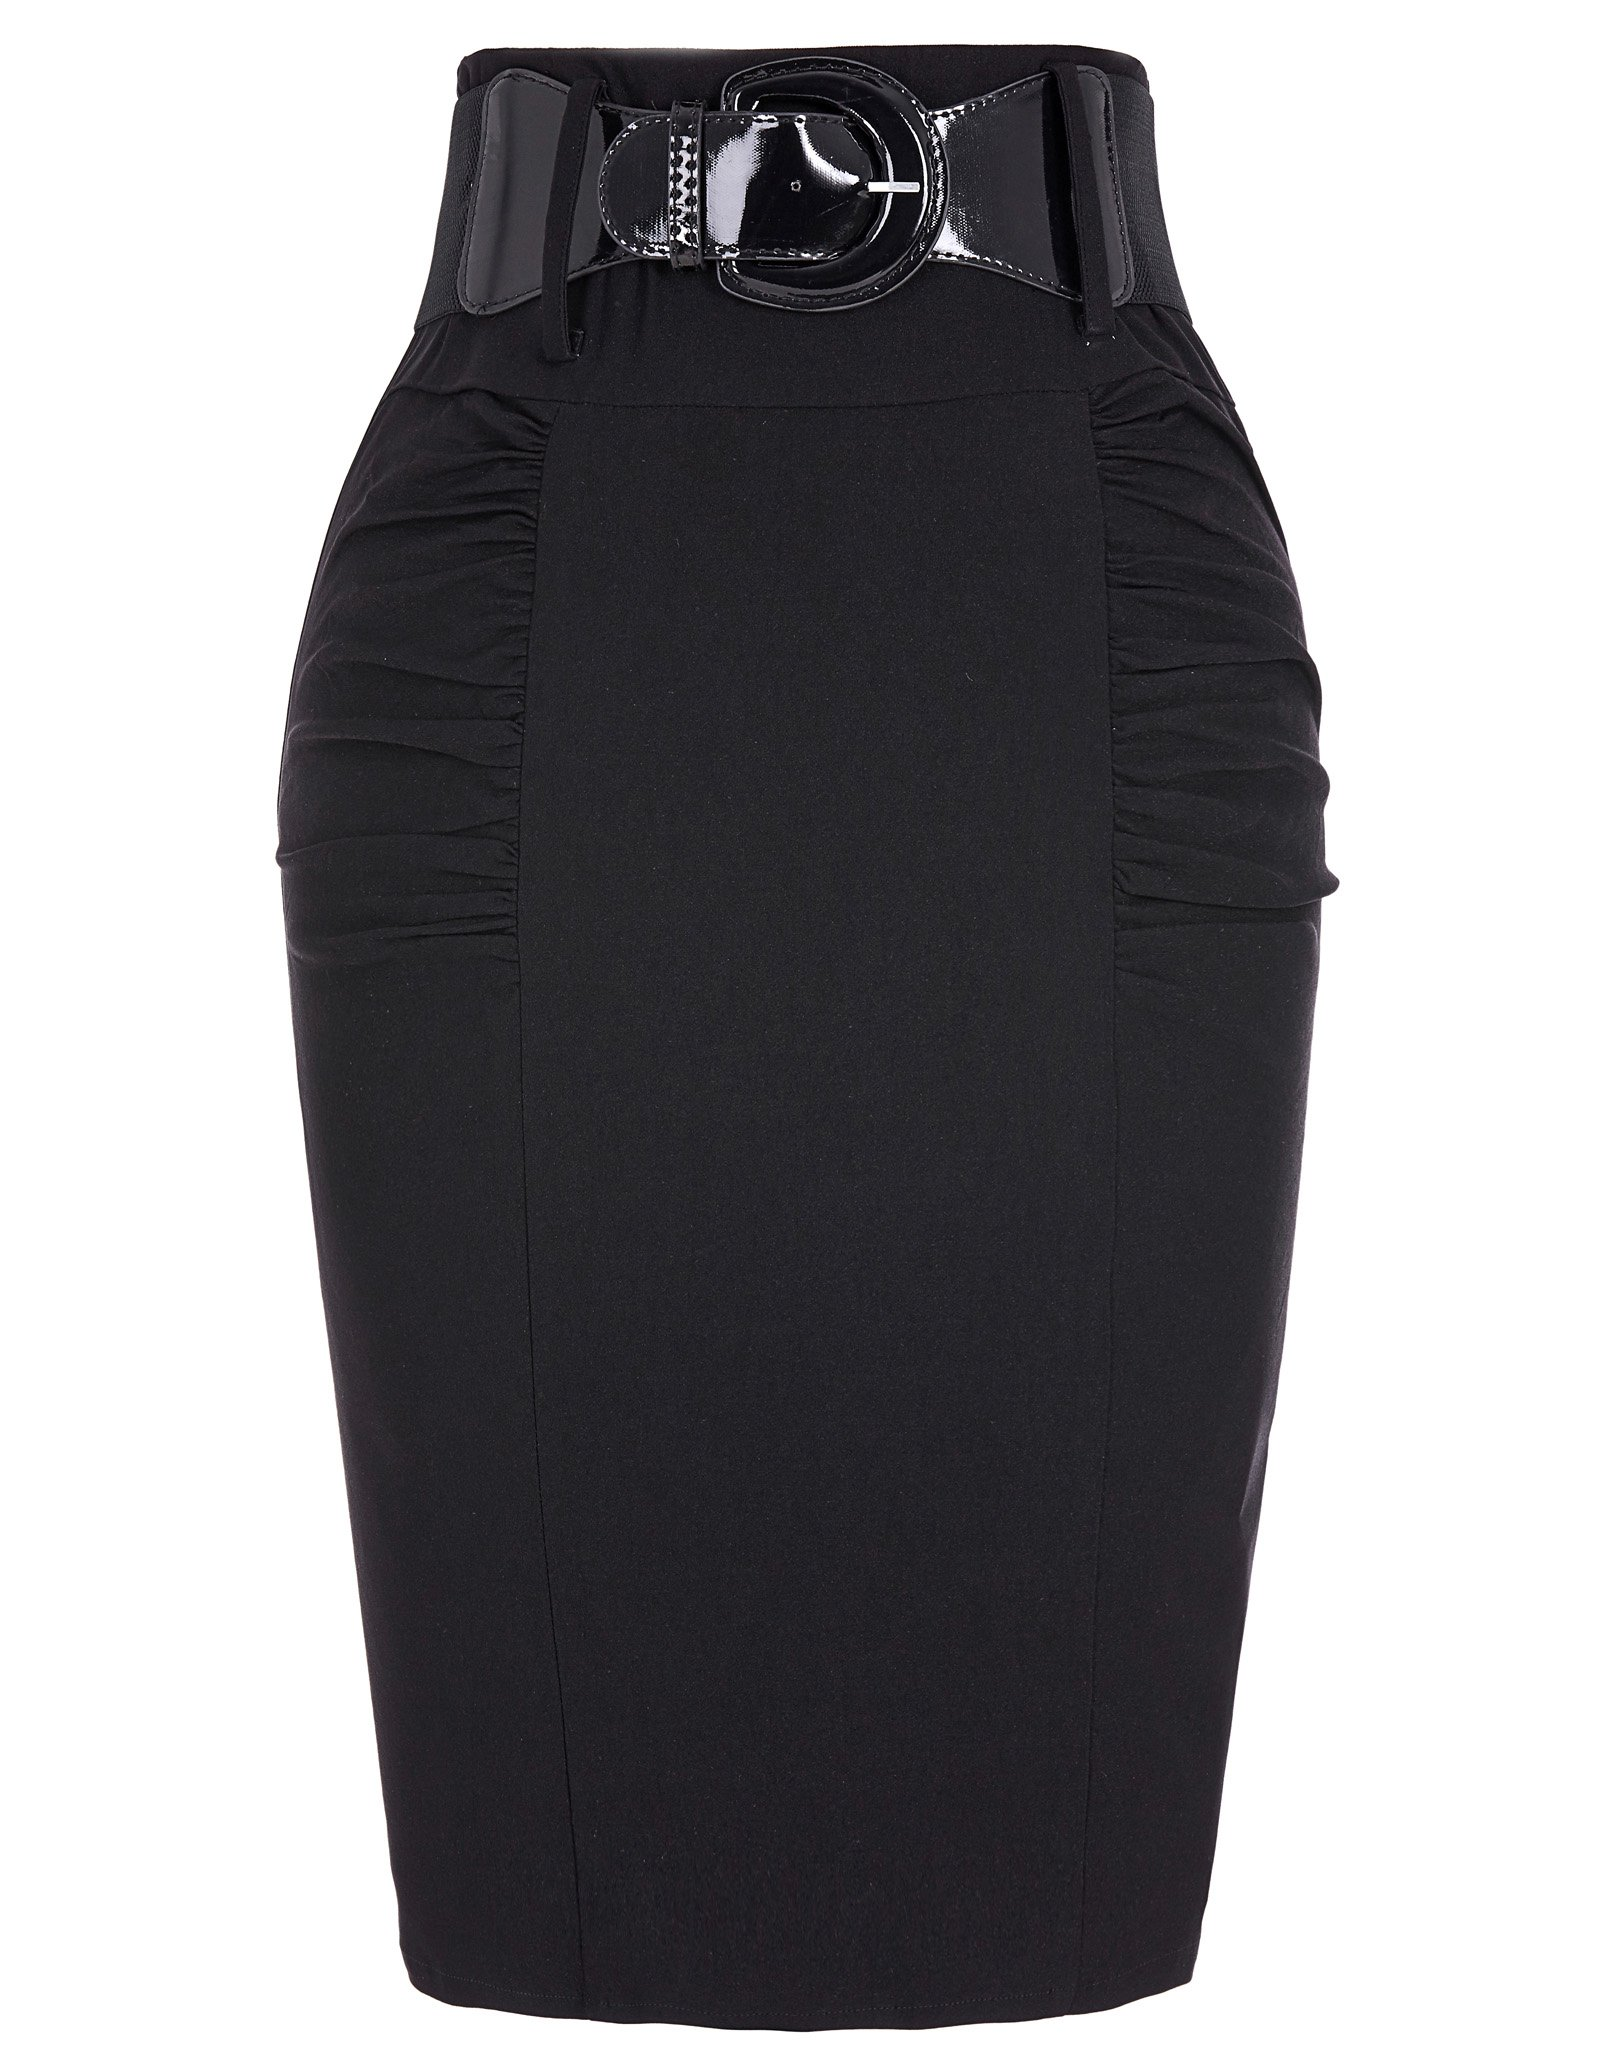 Belle Poque Bodycon Black Stretchy Pencil Skirts for Work Business Size L KK271-1